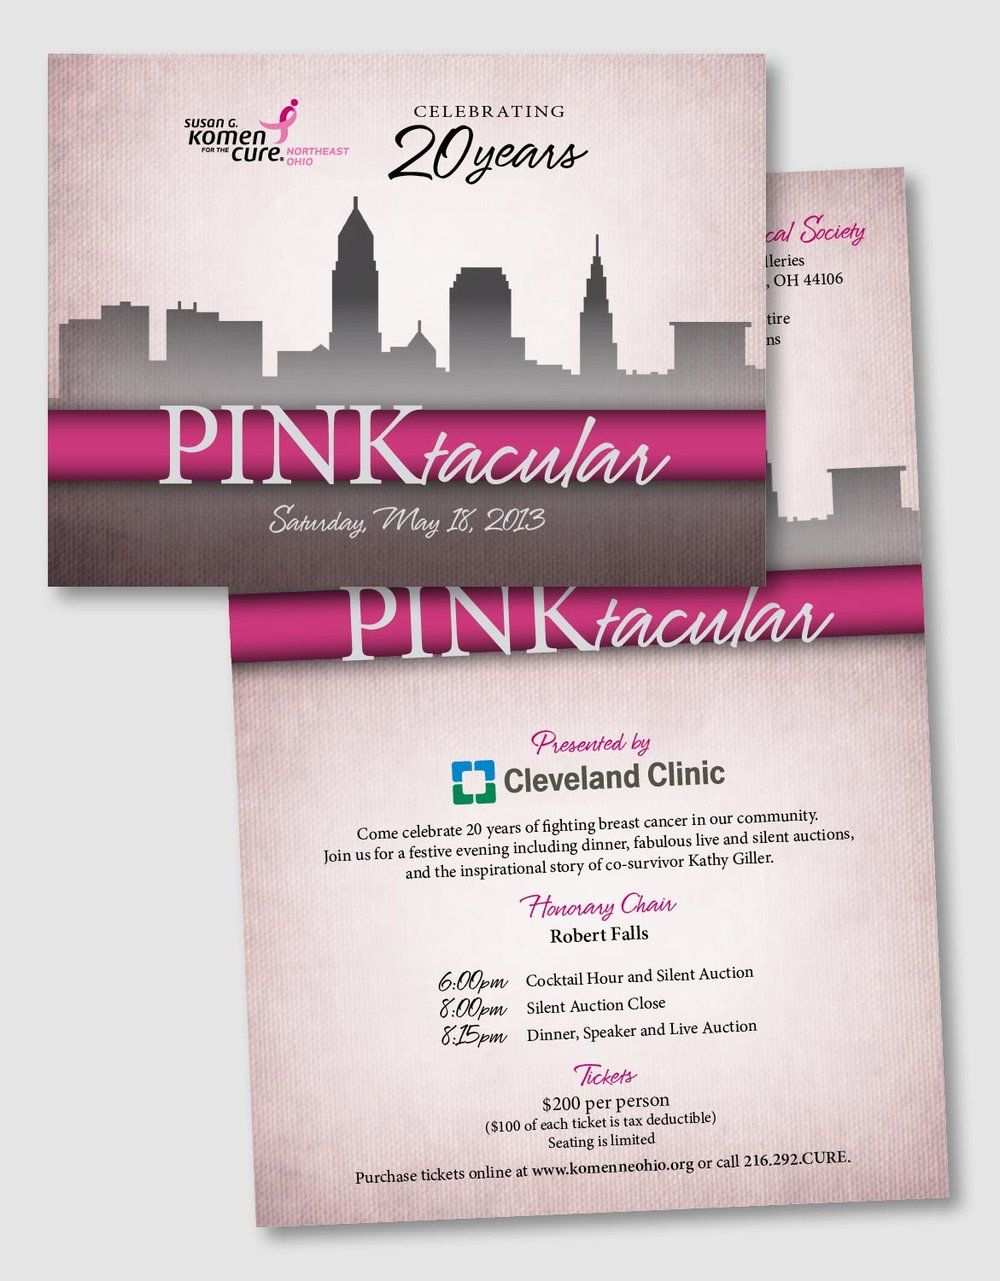 Pinktacular is a fundraiser of the Susan G. Komen for the Cure Northeast Ohio Chapter. Working off the skyline of Cleveland that had been used in race collateral, this invitation design has more of a sophisticated feel. The textured, muted pink background allows the bright pink ribbon and logo to stand out.       time and costs were donated as a contribution to this fundraiser